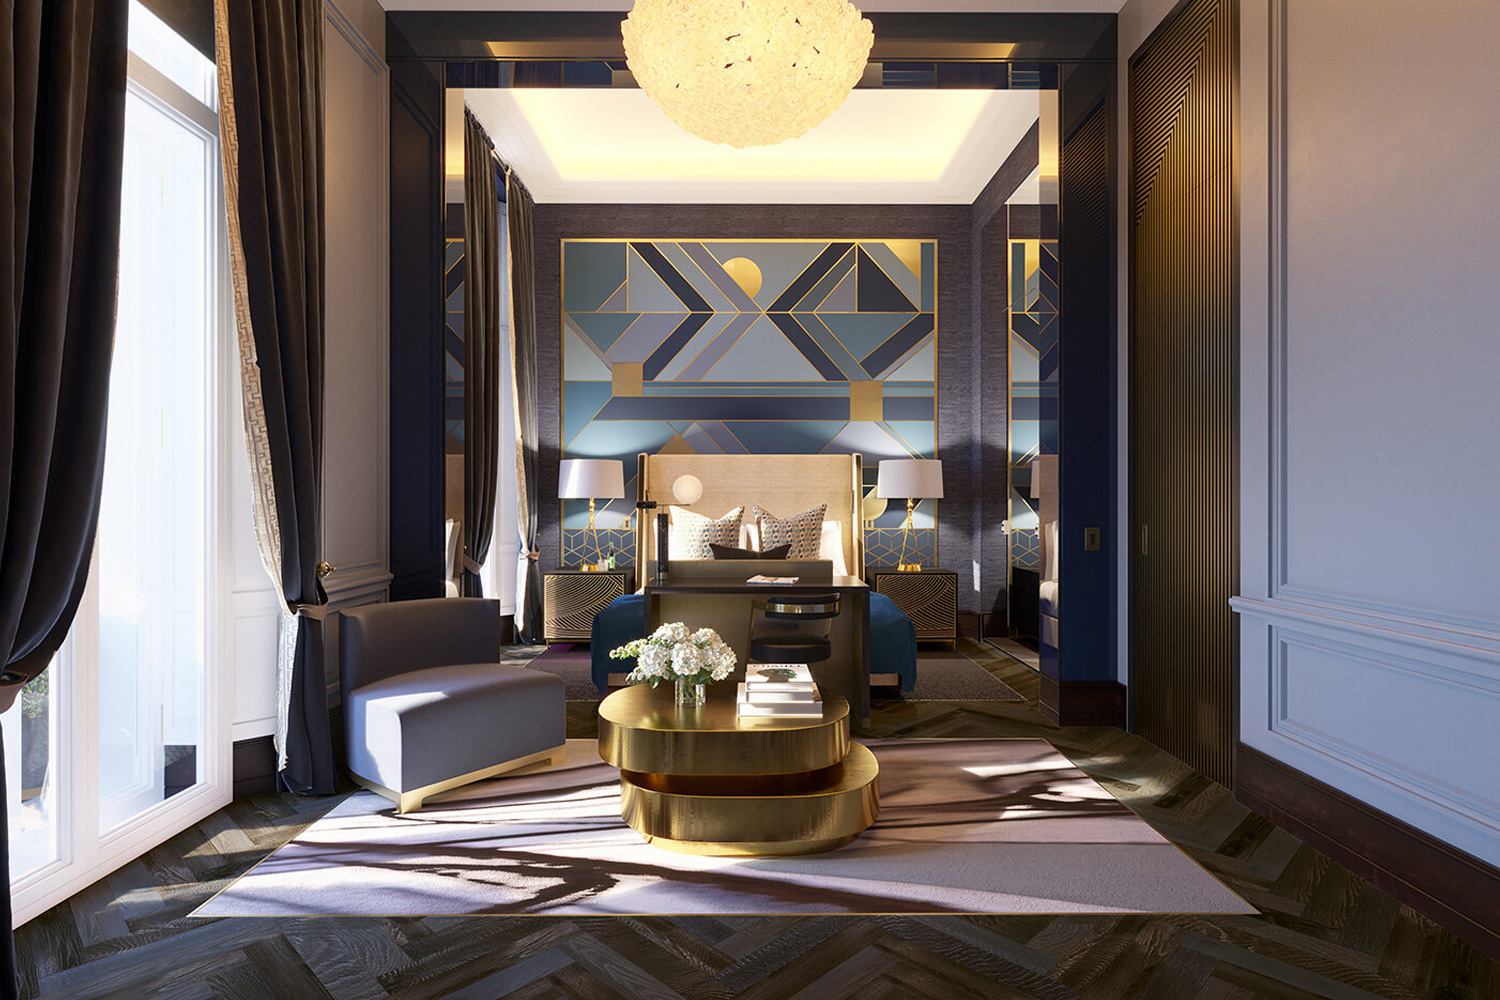 a-hotel-in-london_new2